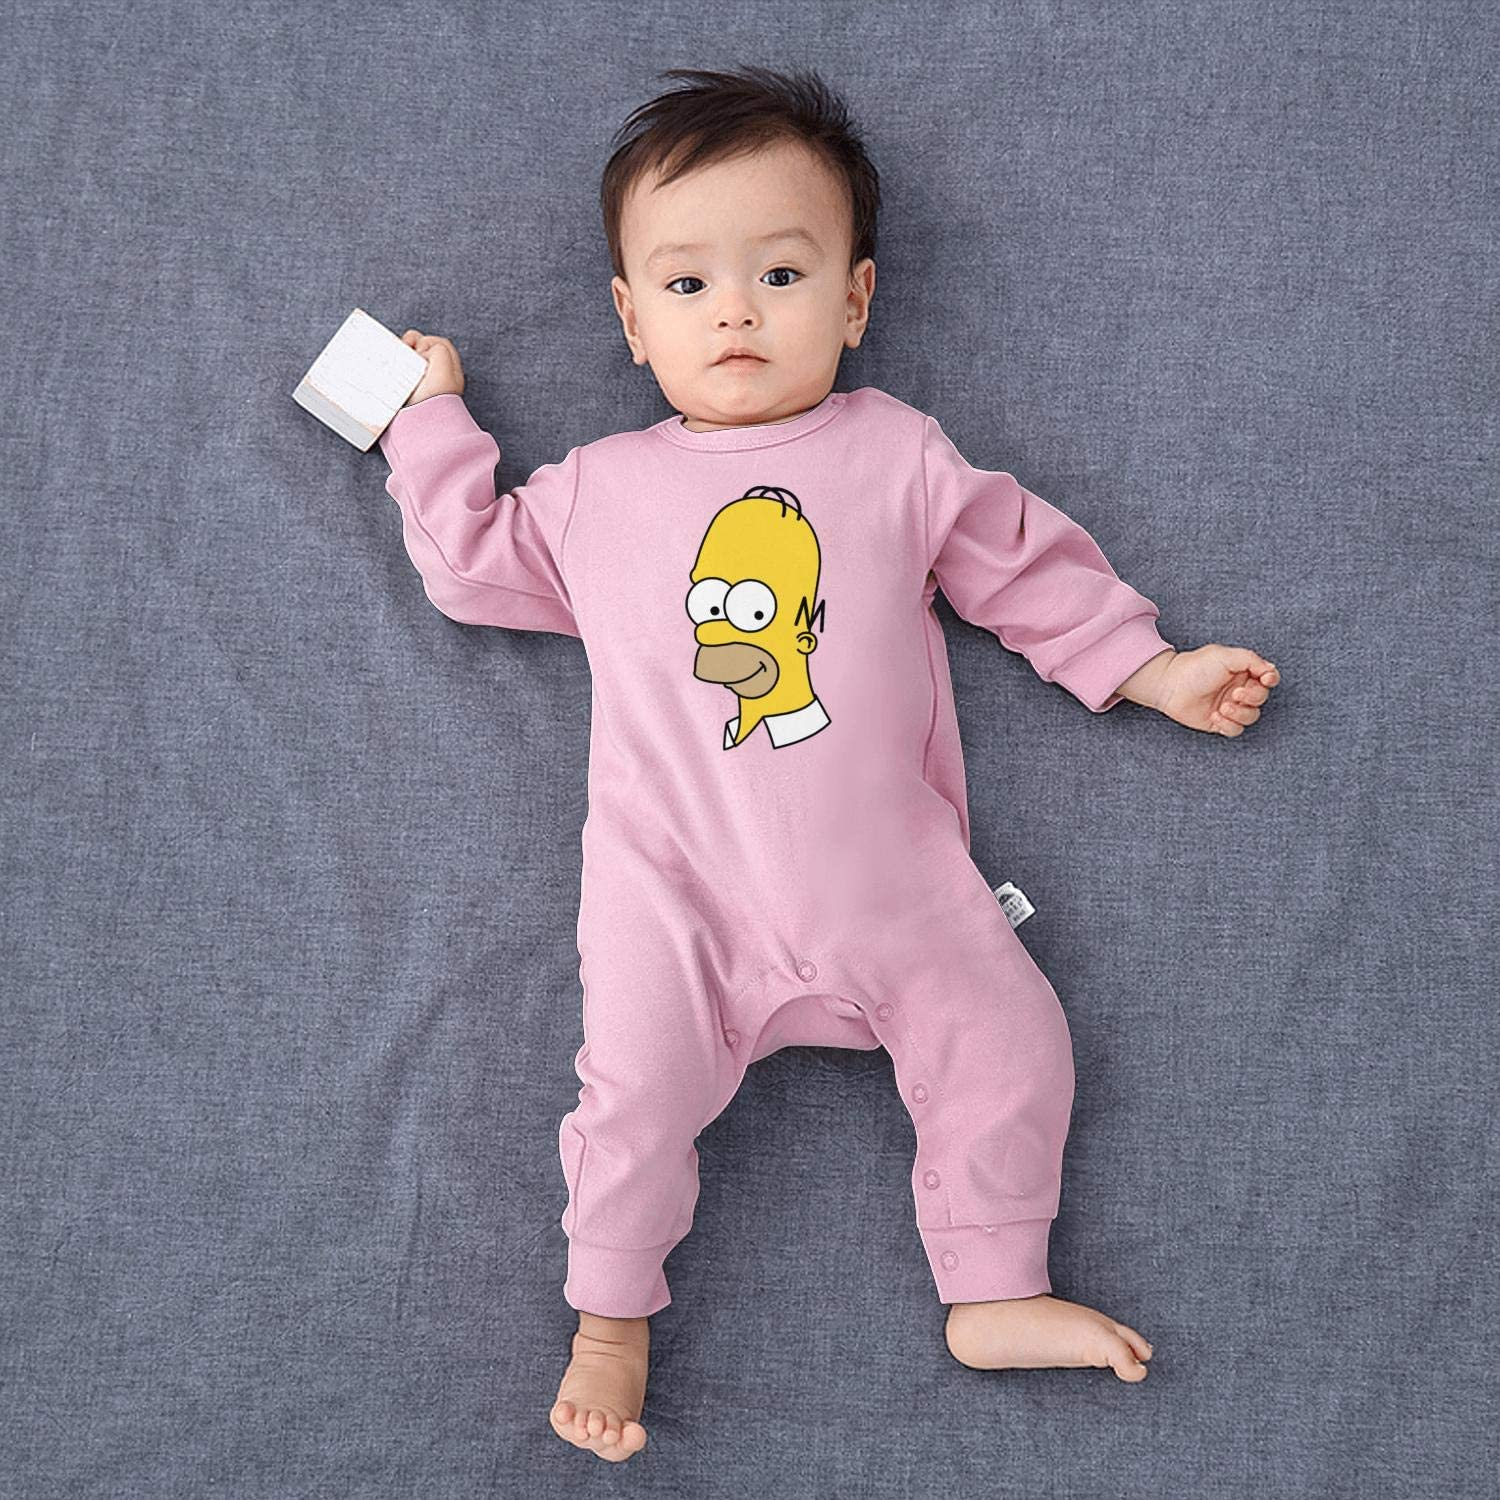 Baby Girls Boys Onesies The-Simpsons-Homer-Simpson Baby Onesie Printed Bodysuit